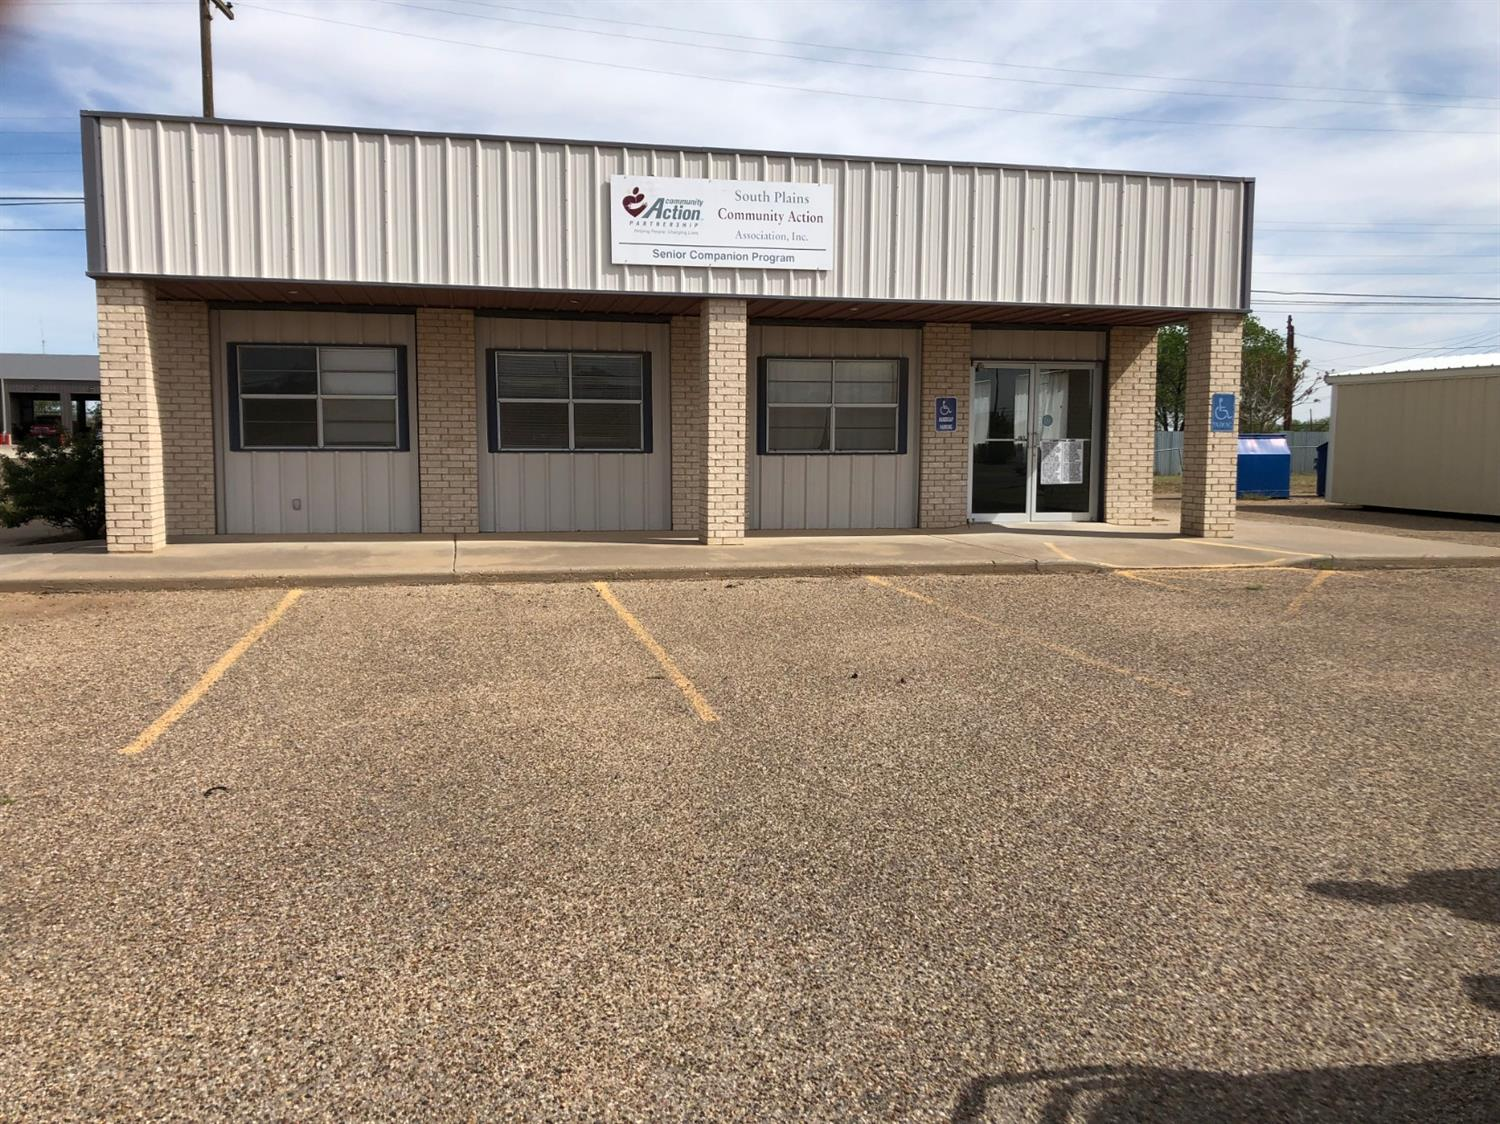 This building is in excellent condition with 2 handicap restrooms, 3 offices with reception area, total electric, lots of parking spaces all on pavement.